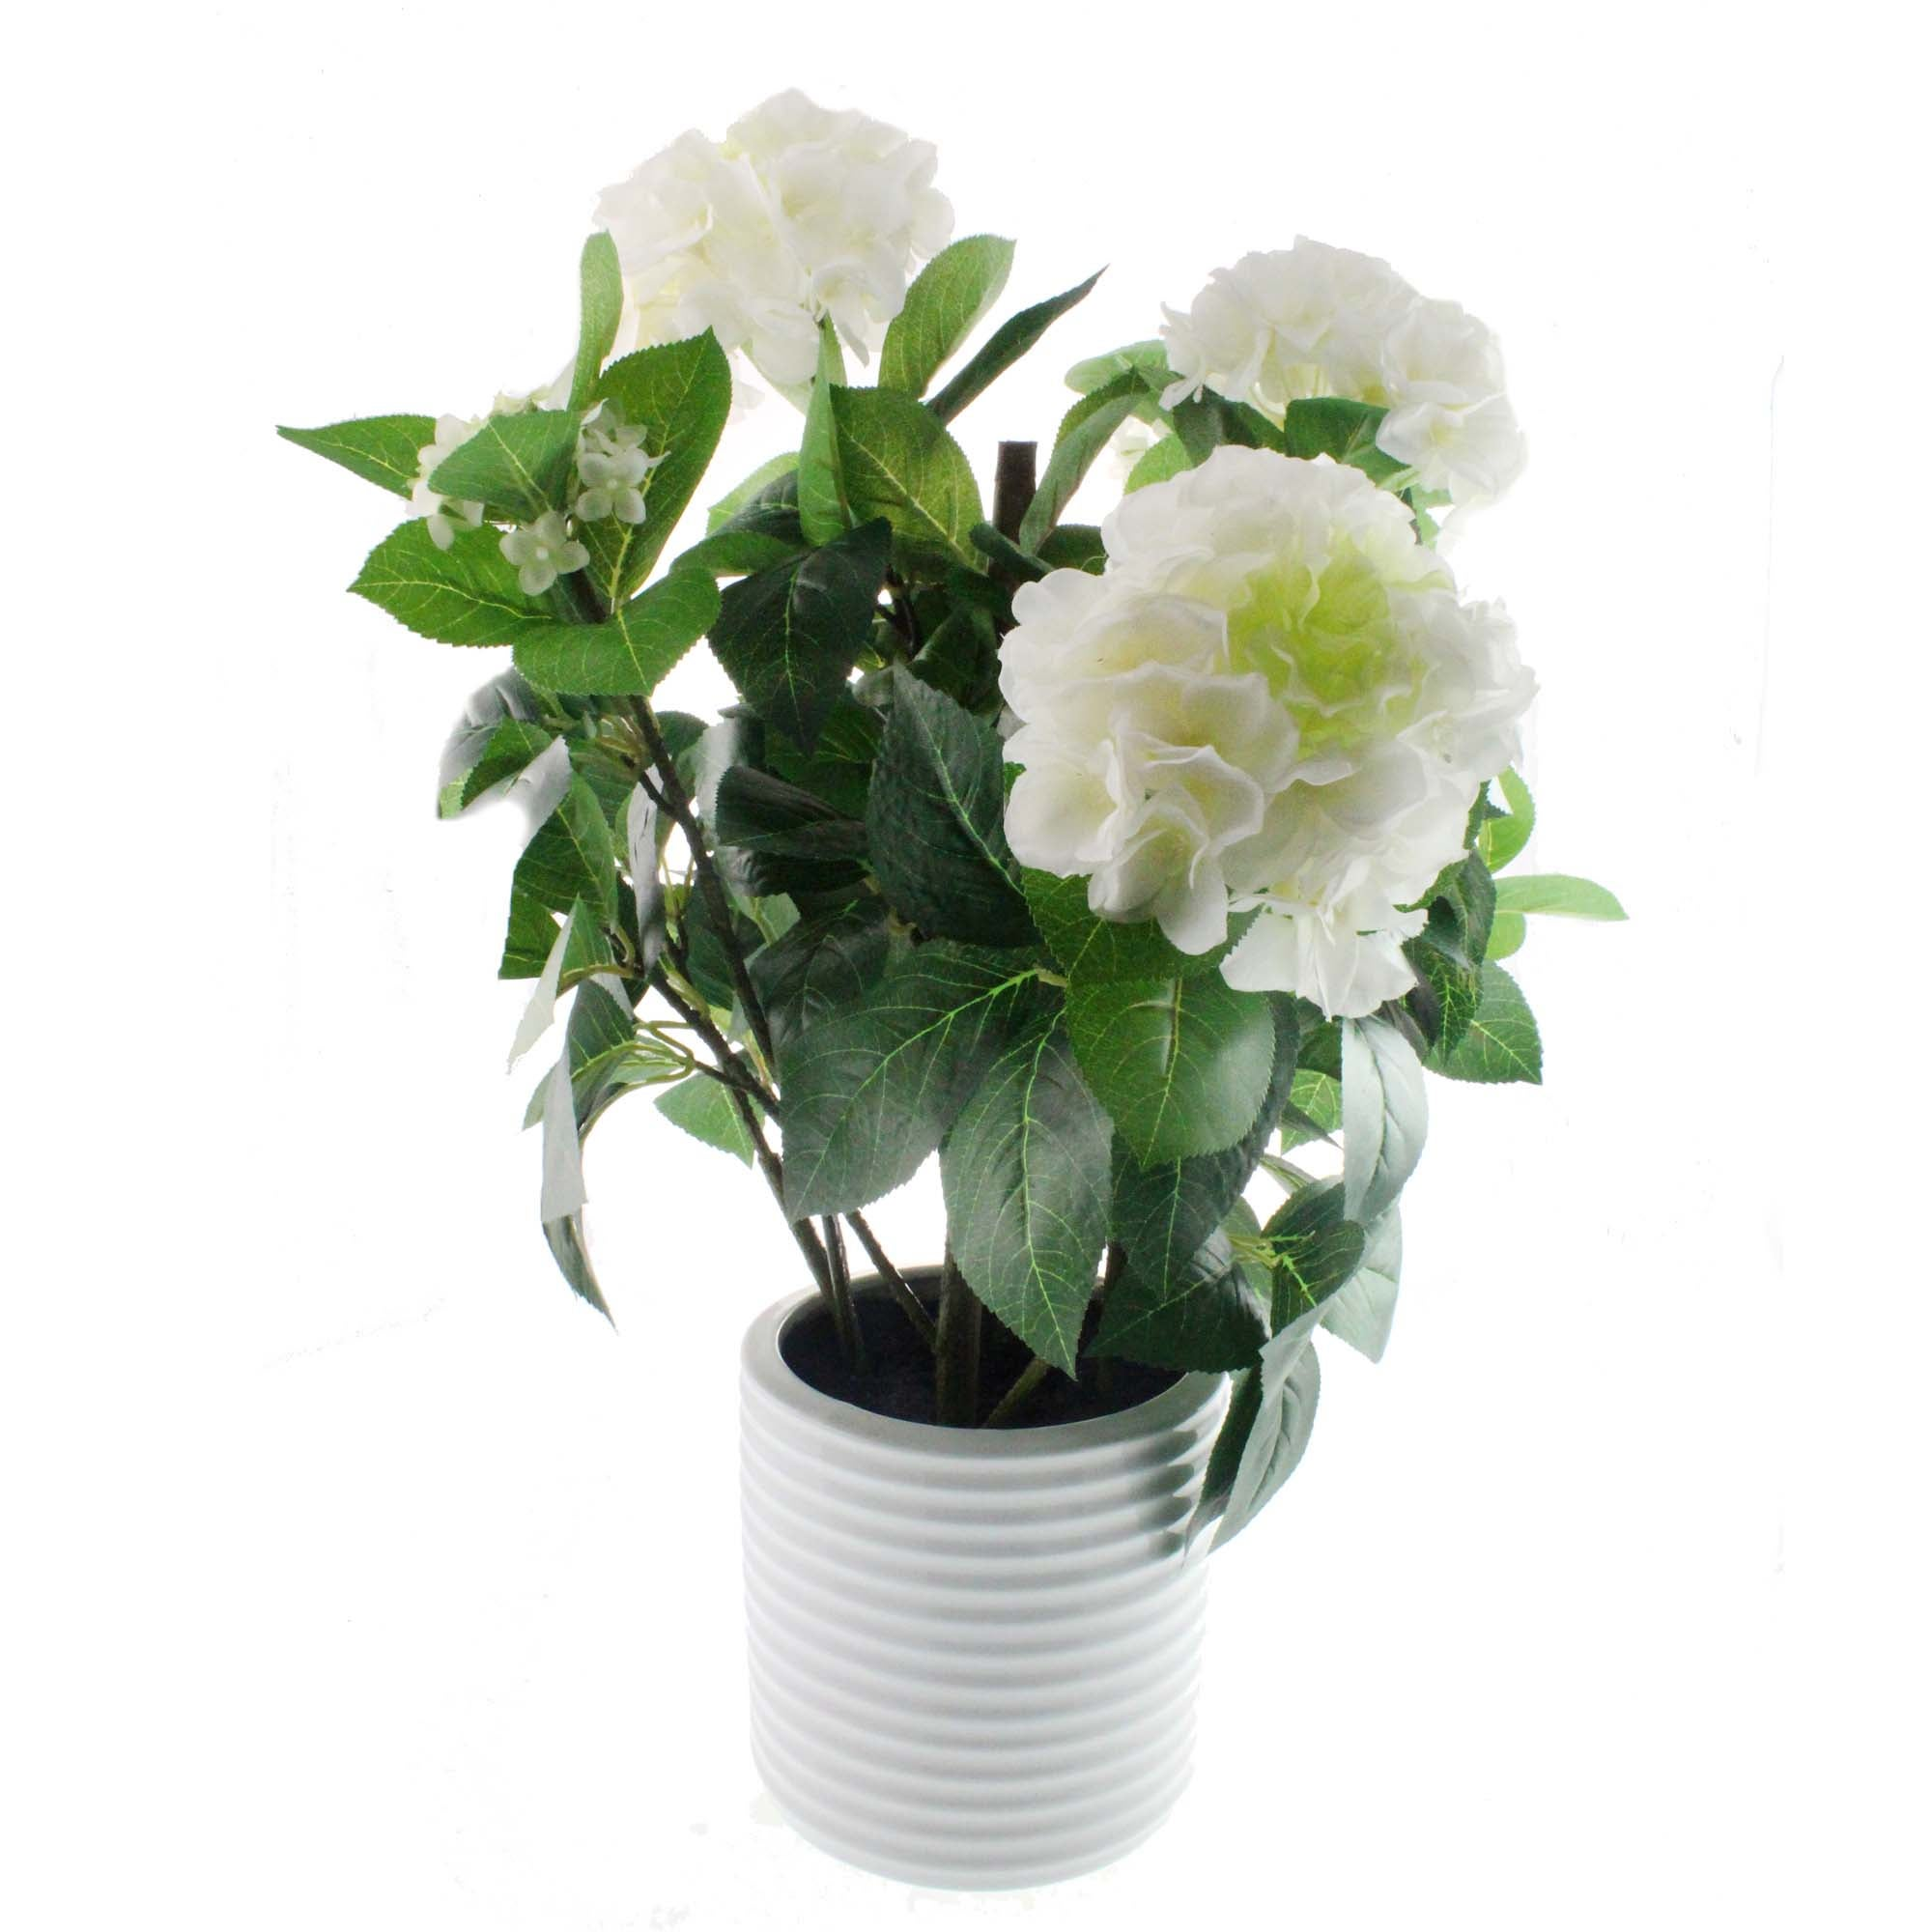 Image of Hydrangea Plant in White Pot Cream